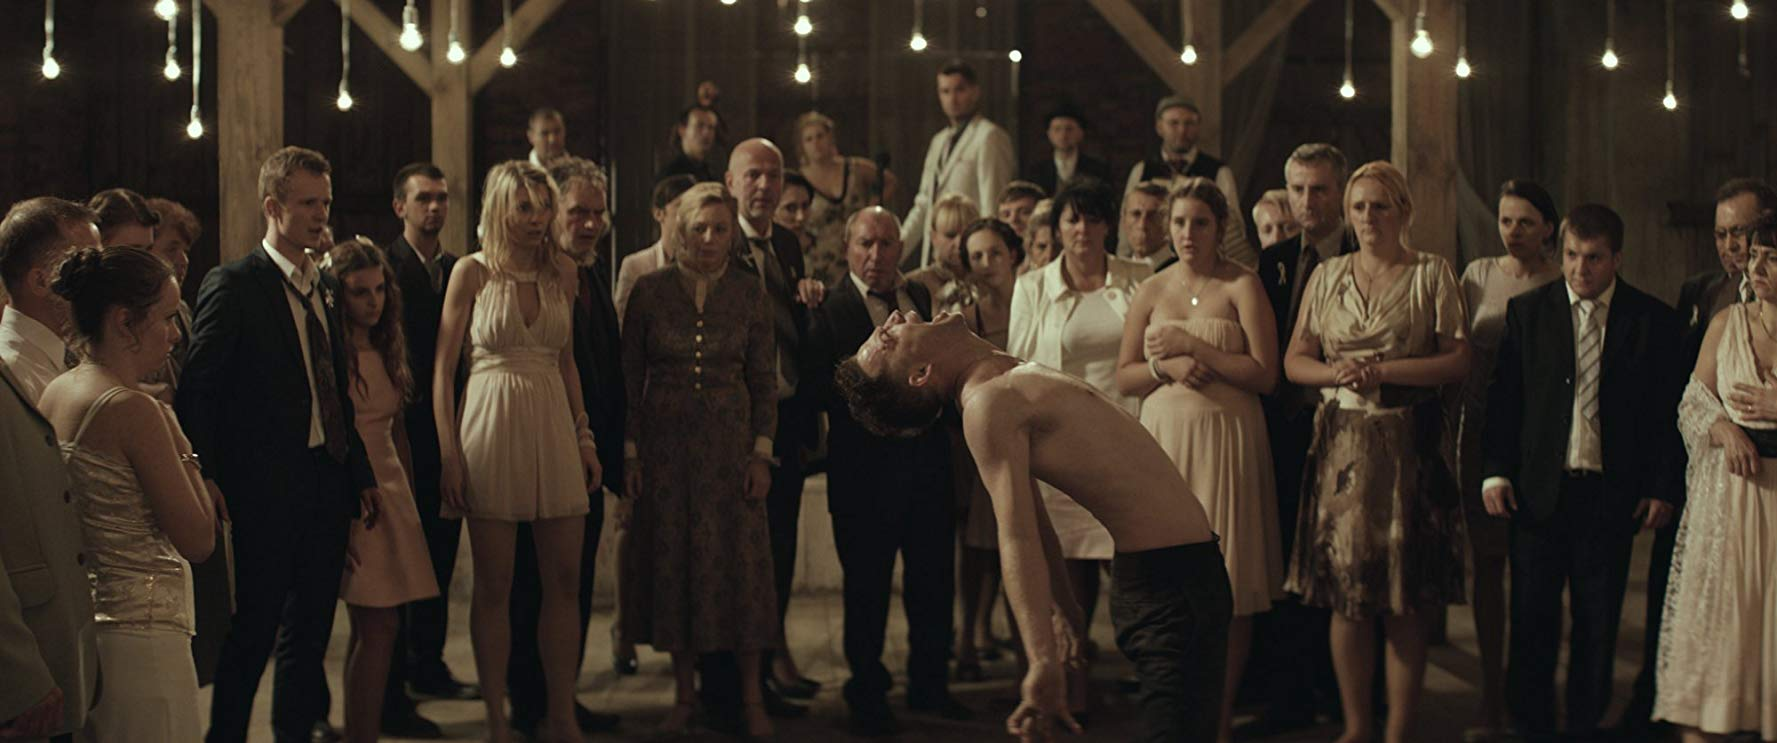 Horror Internationale: In 'Demon,' An Unexpected Wedding Guest Exposes Poland's Dark Past